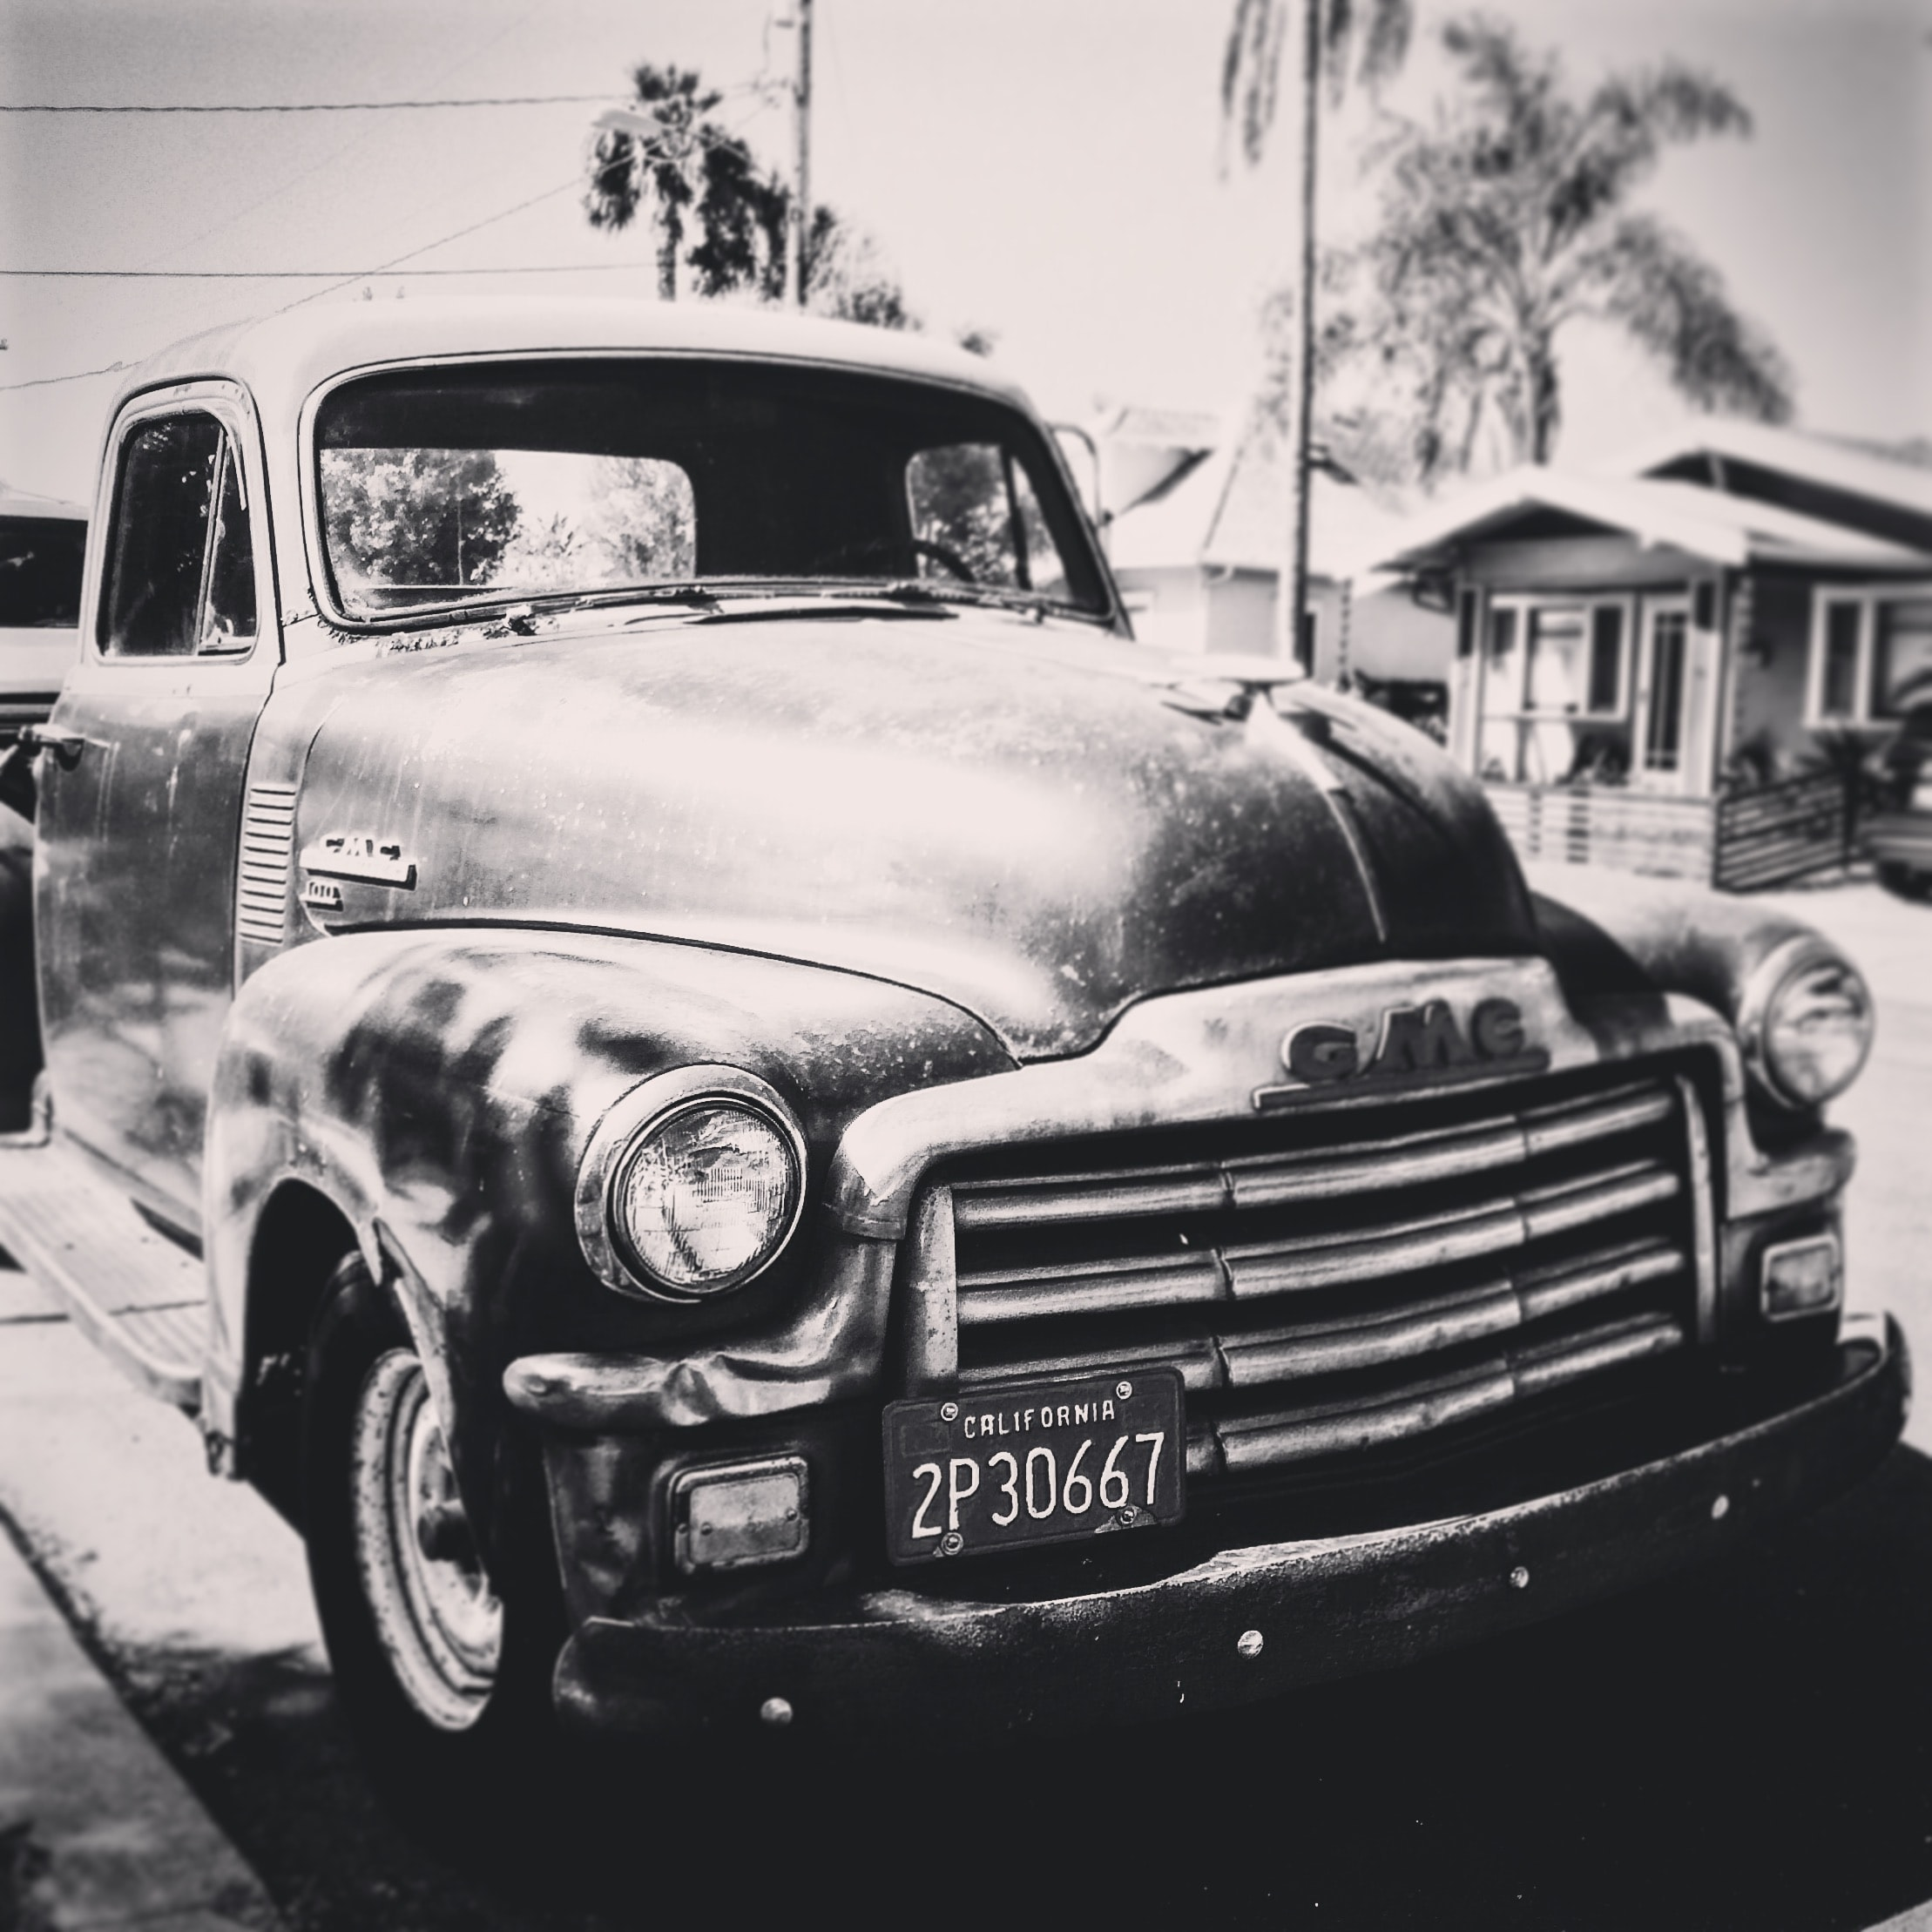 Black and white photo of vintage truck parked in a beach setting.